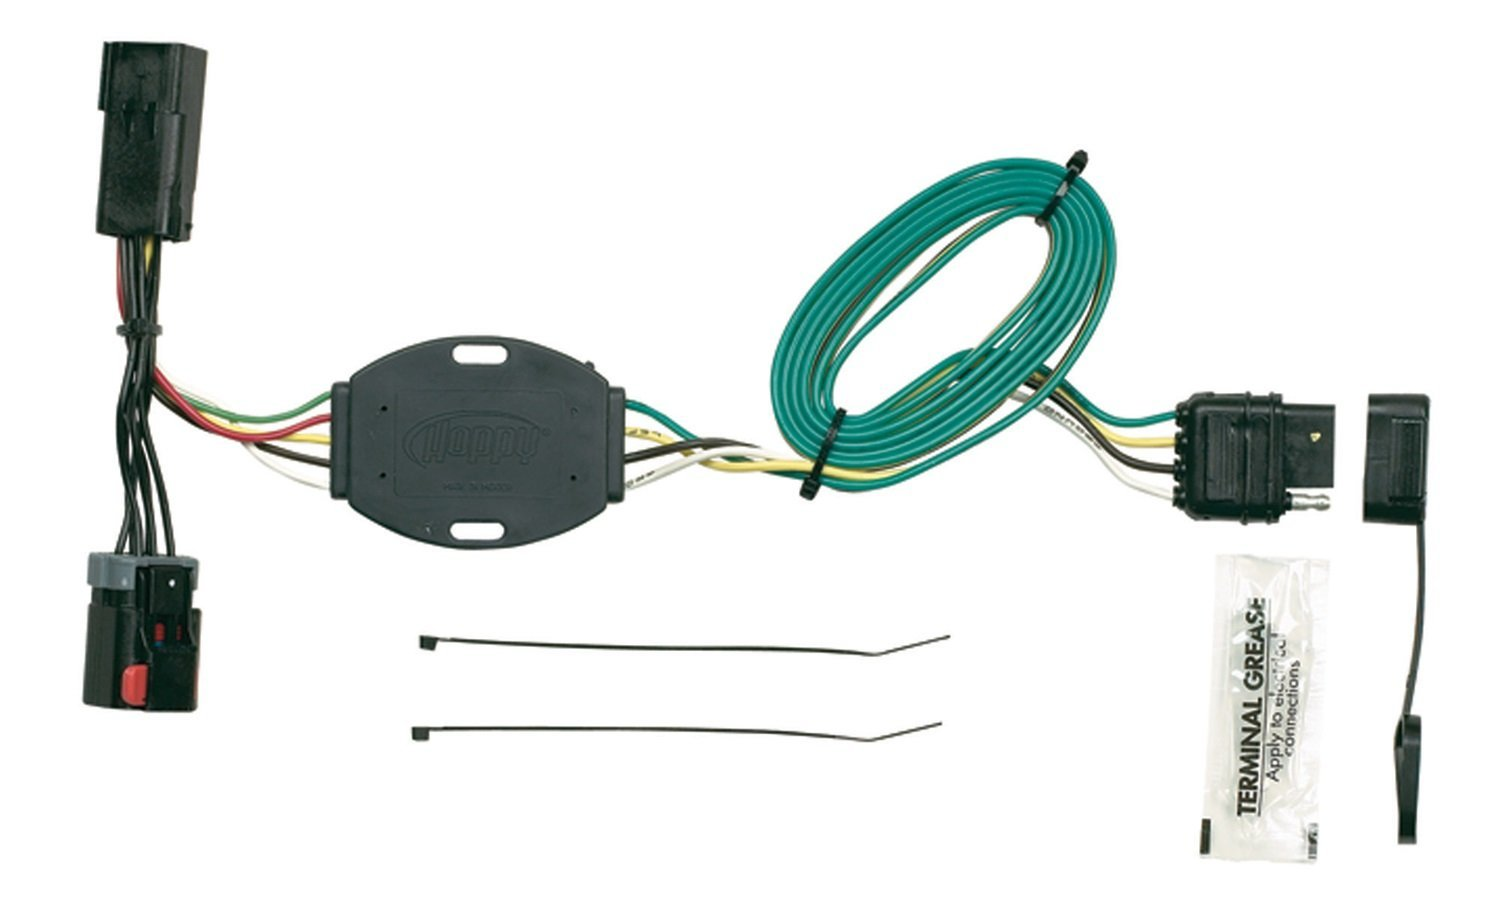 hight resolution of hopkins 42225 plug in simple vehicle wiring kit t connectors allow you to connect your trailer s wiring system into your vehicle s wiring system by hopkins